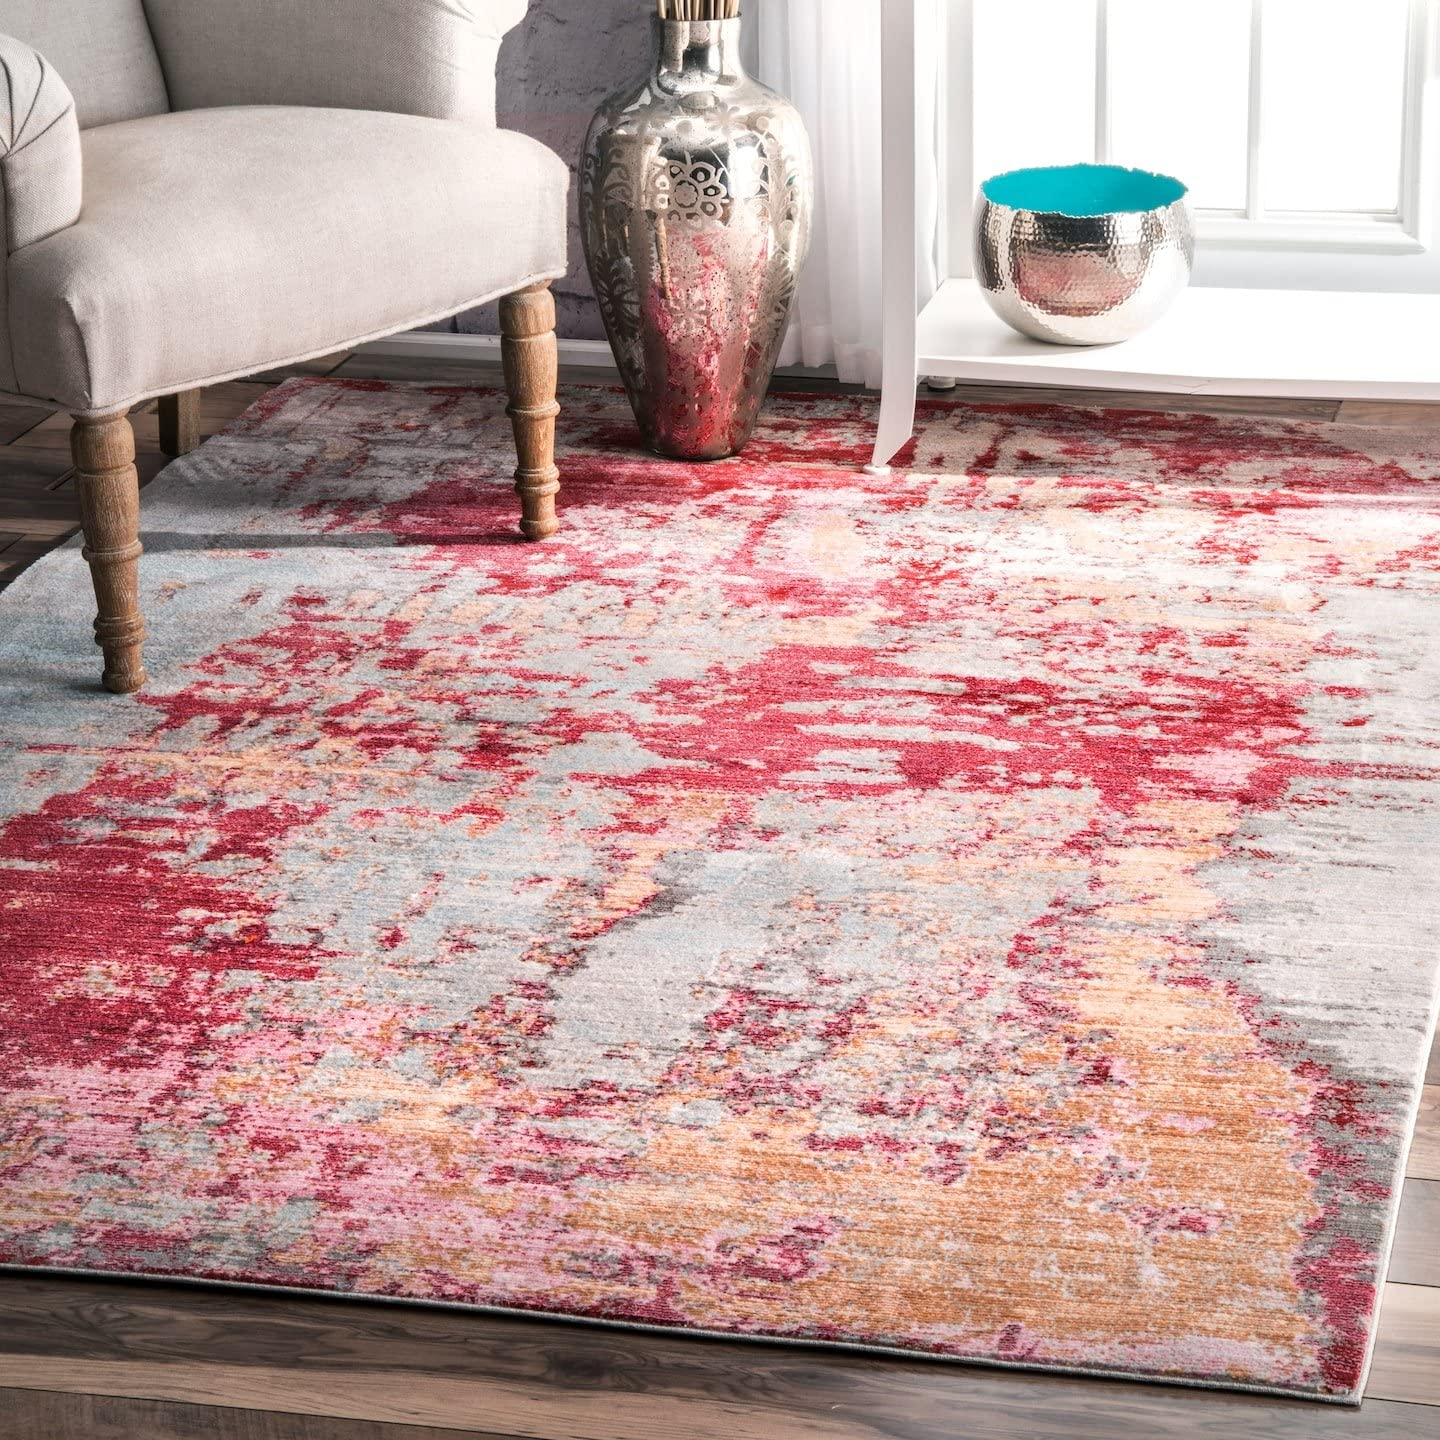 nuLOOM Mitzie Abstract Area Rug, 7 10 x 10 10 , Red